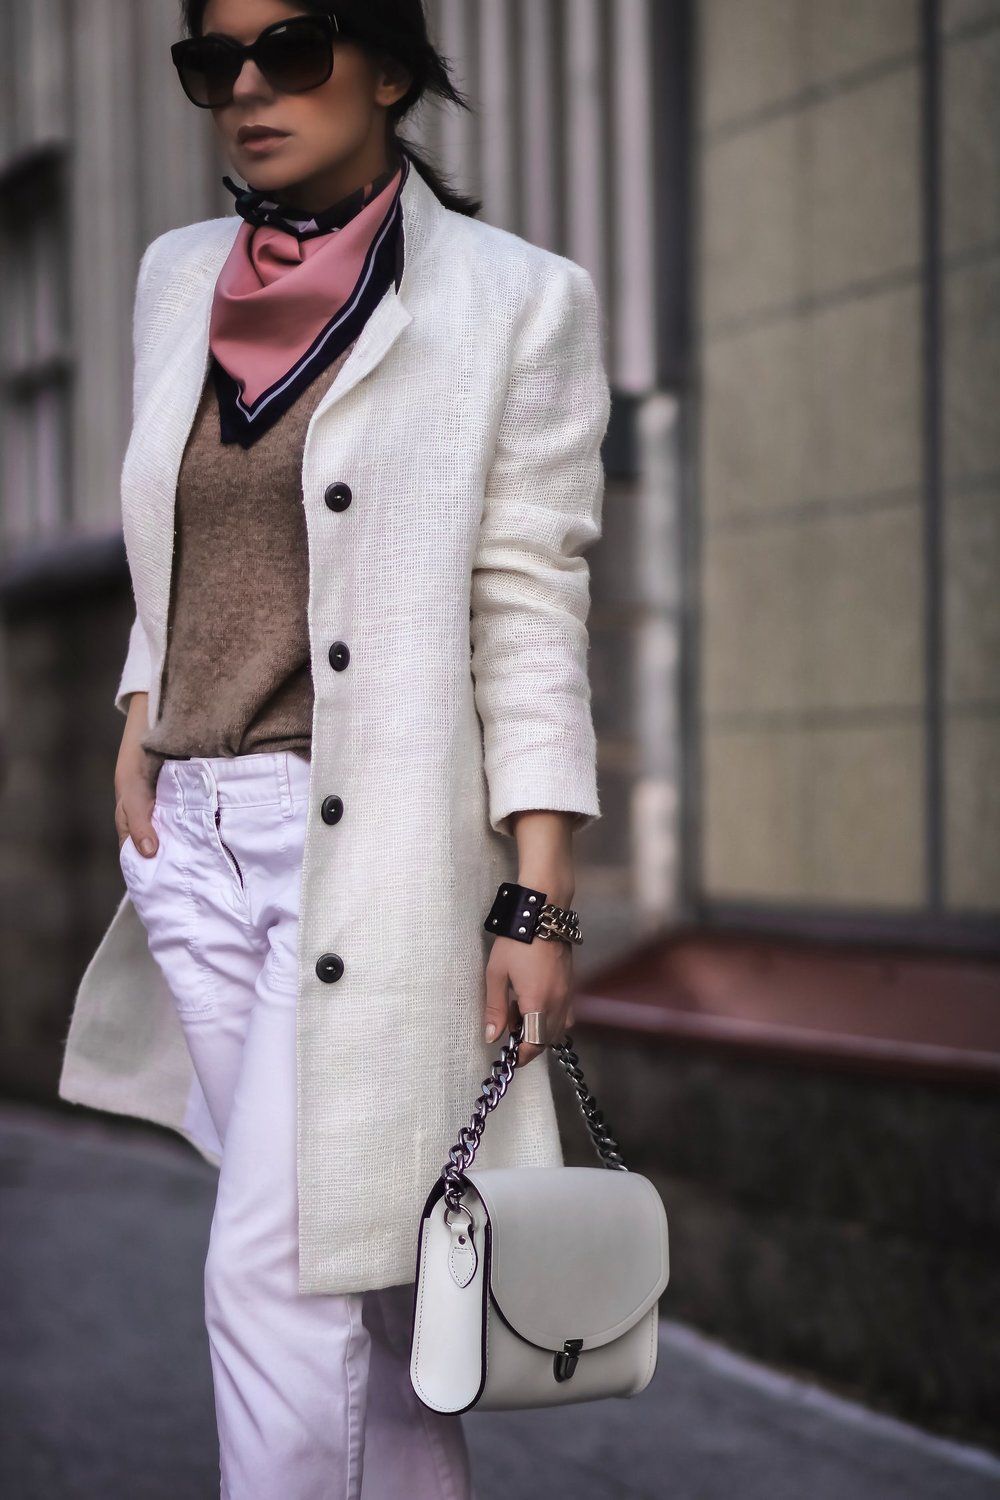 Isabel-Alexander-streetstyle-outfit-white-coat-denim